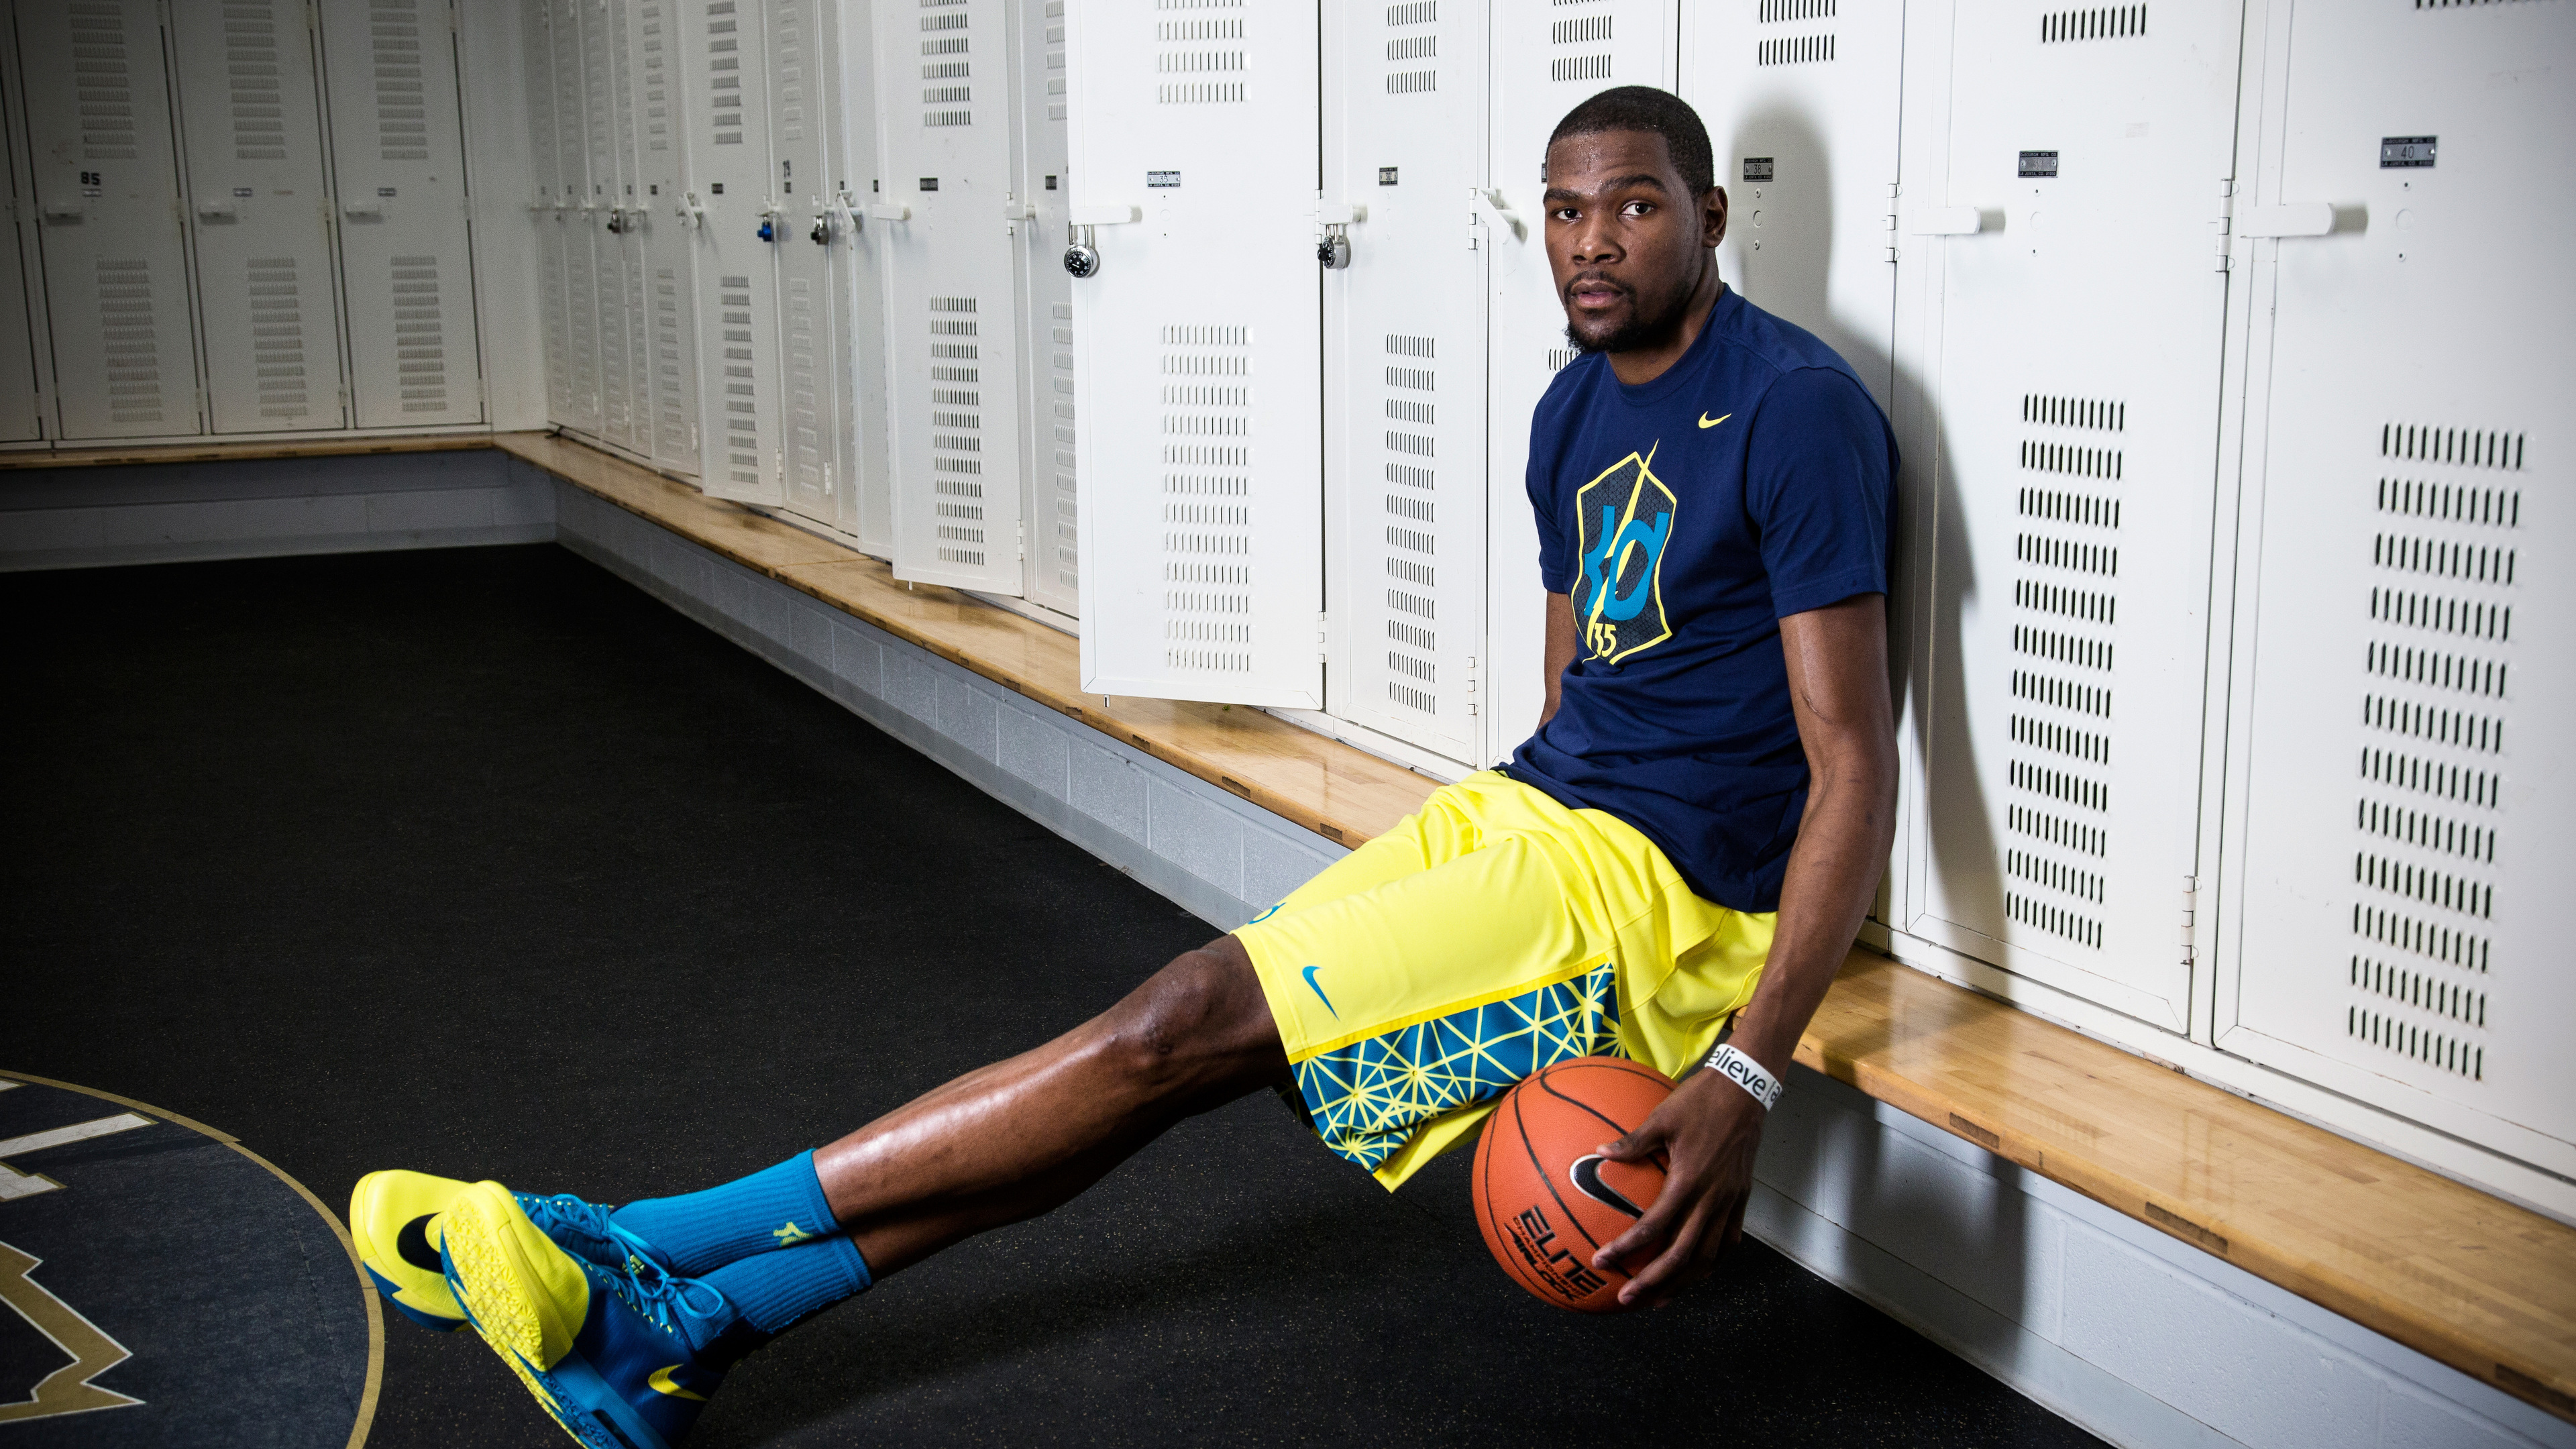 kevin durant 1538786930 - Kevin Durant - sports wallpapers, nba wallpapers, male celebrities wallpapers, kevin durant wallpapers, hd-wallpapers, boys wallpapers, 5k wallpapers, 4k-wallpapers